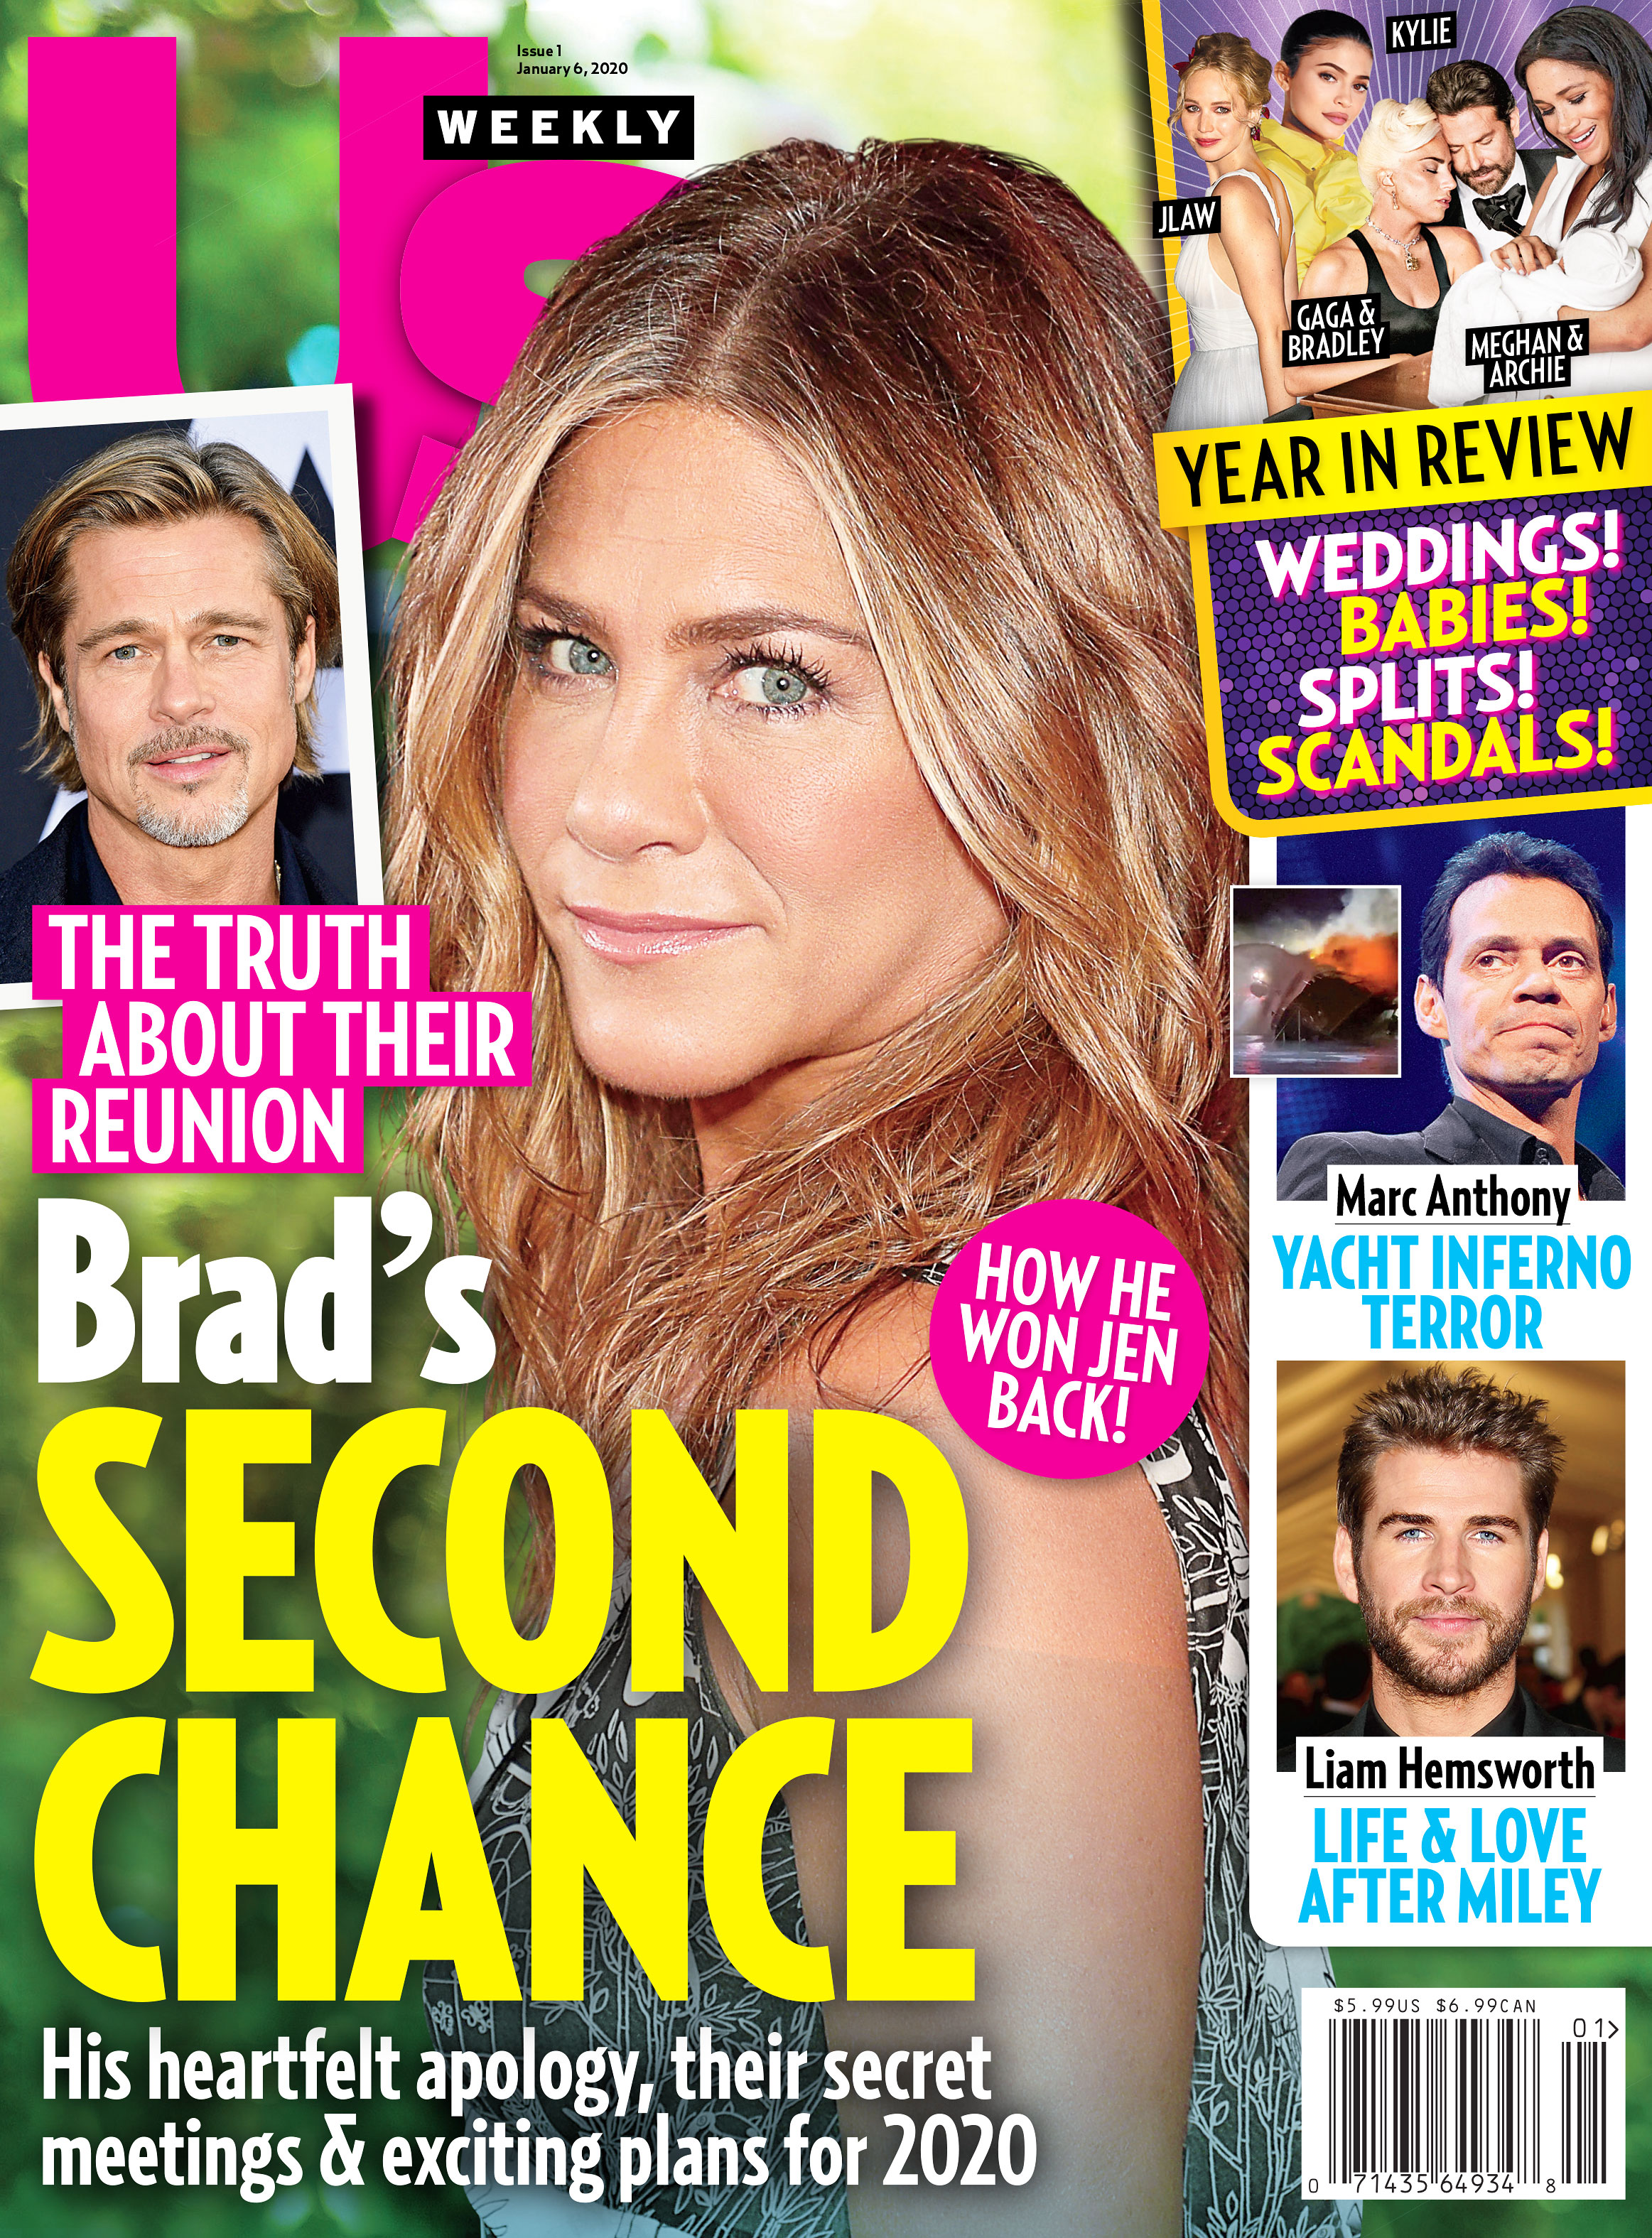 Us Weekly Cover Issue 0120 Jennifer Aniston Brads Second Chance